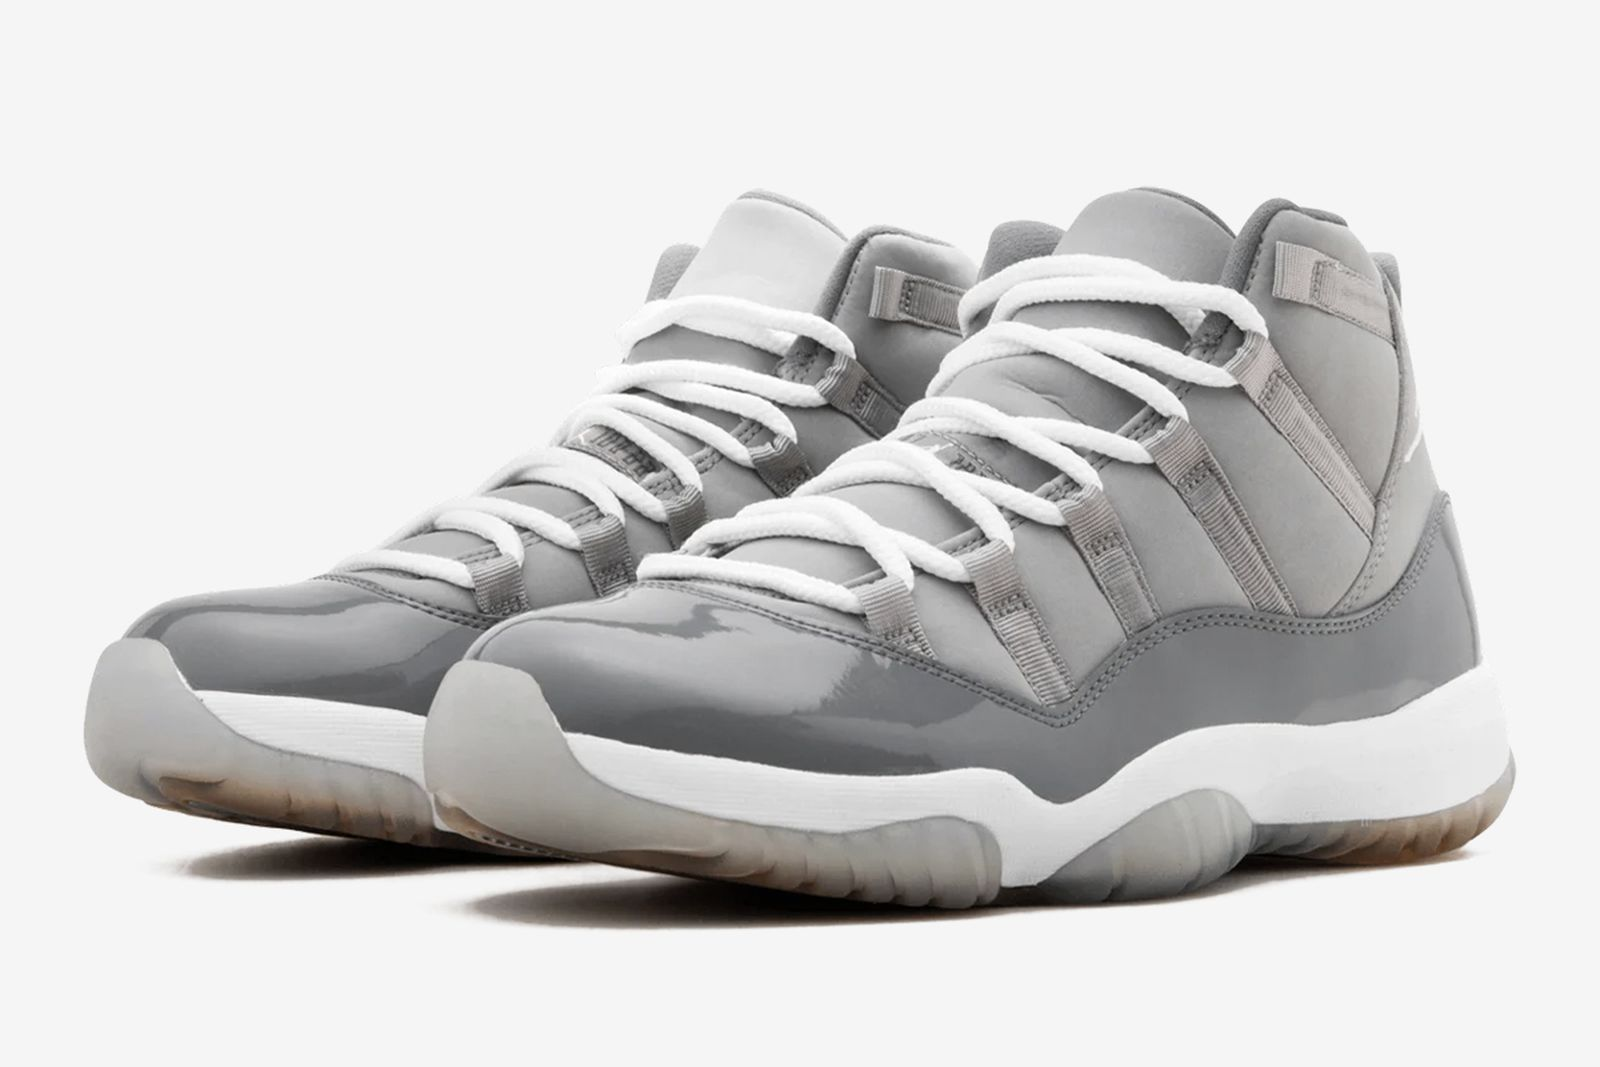 nike-air-jordan-11-cool-grey-2021-release-rumor-03